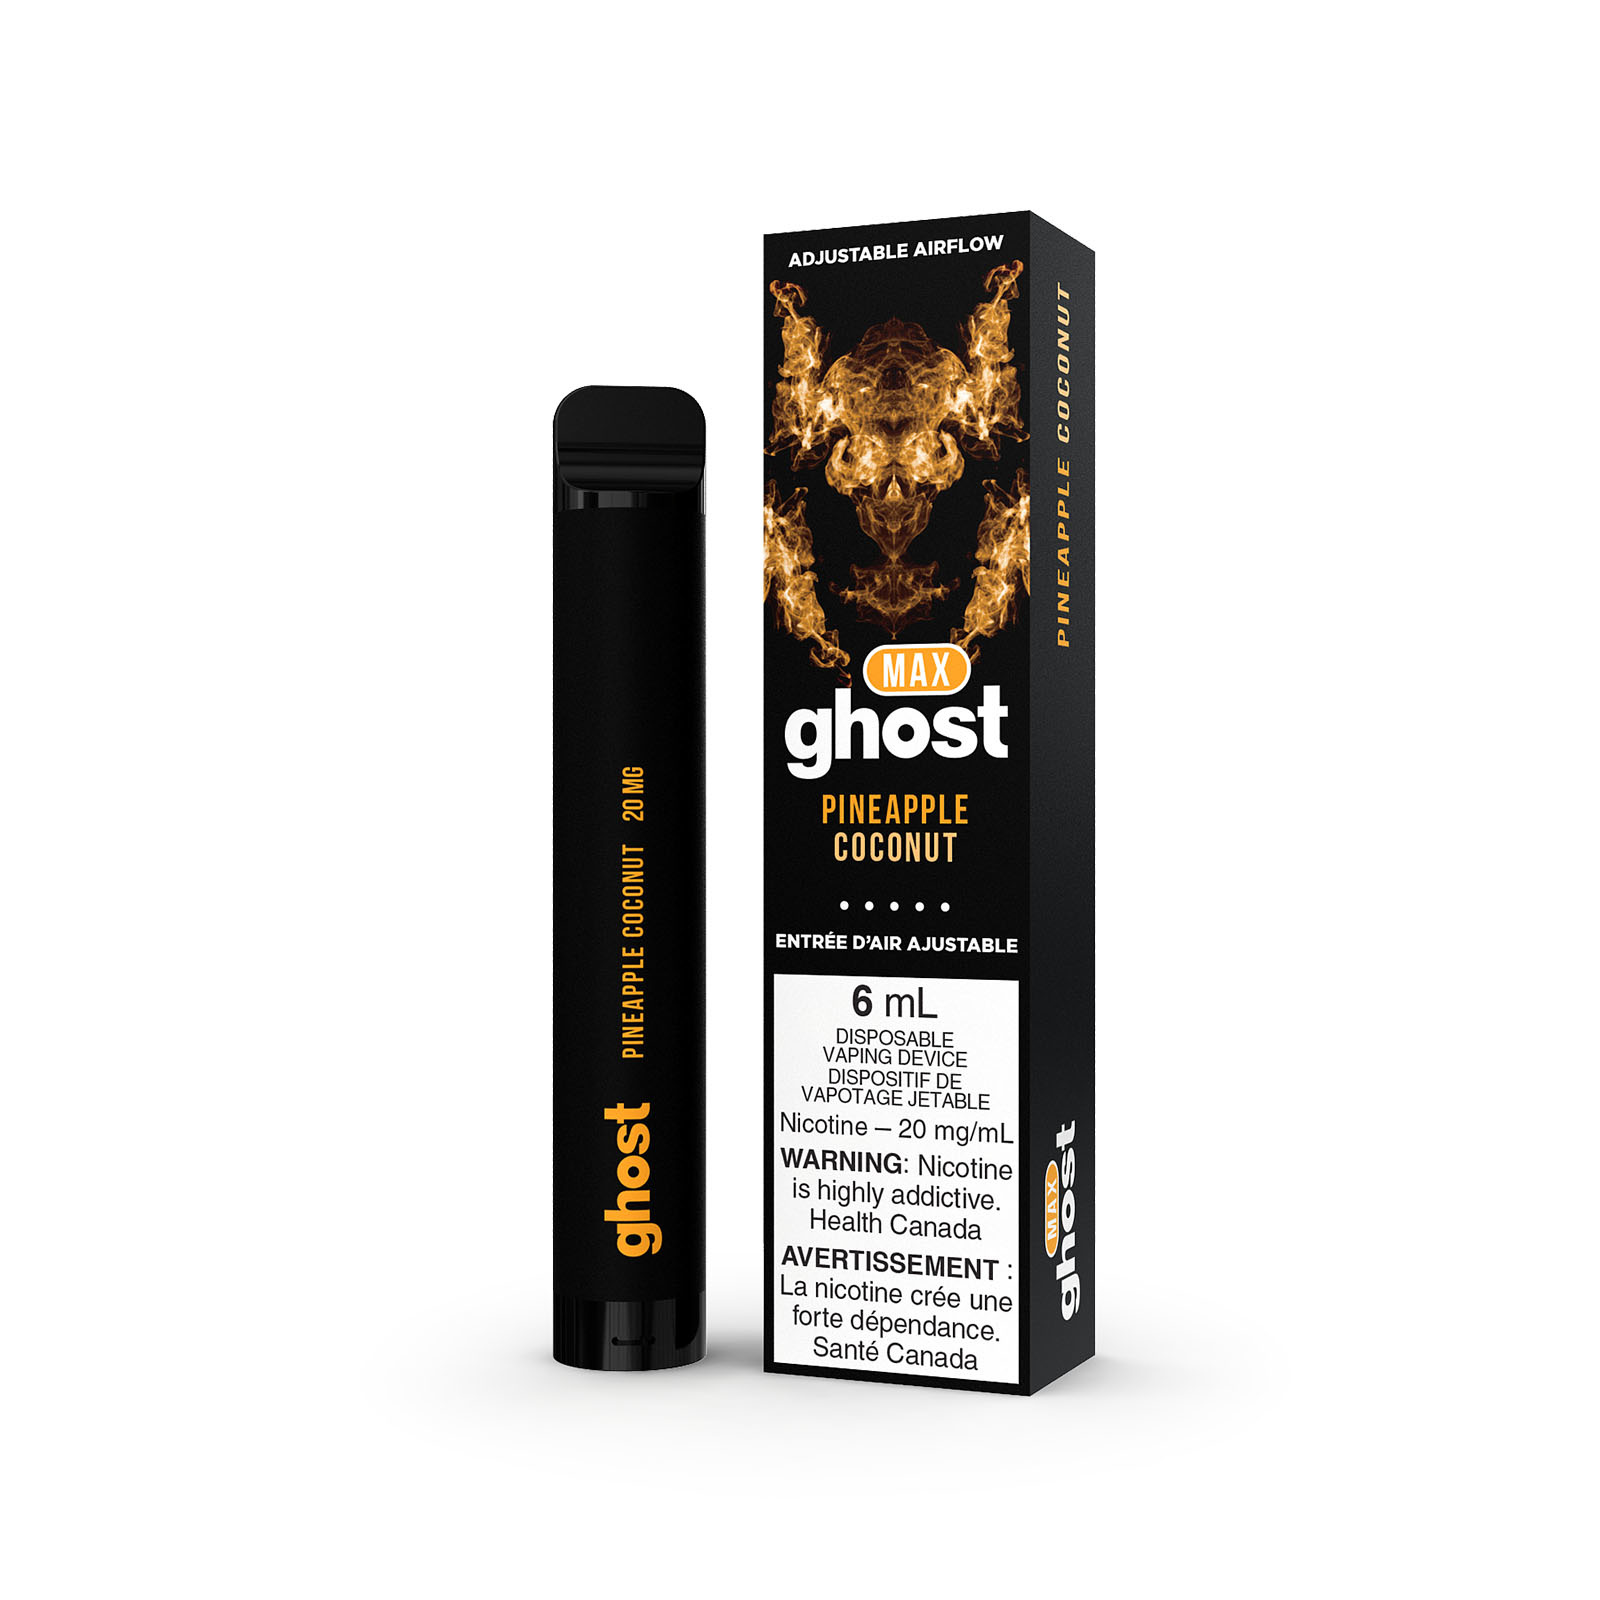 Ghost Ghost Max Pineapple Coconut Disposable Vape